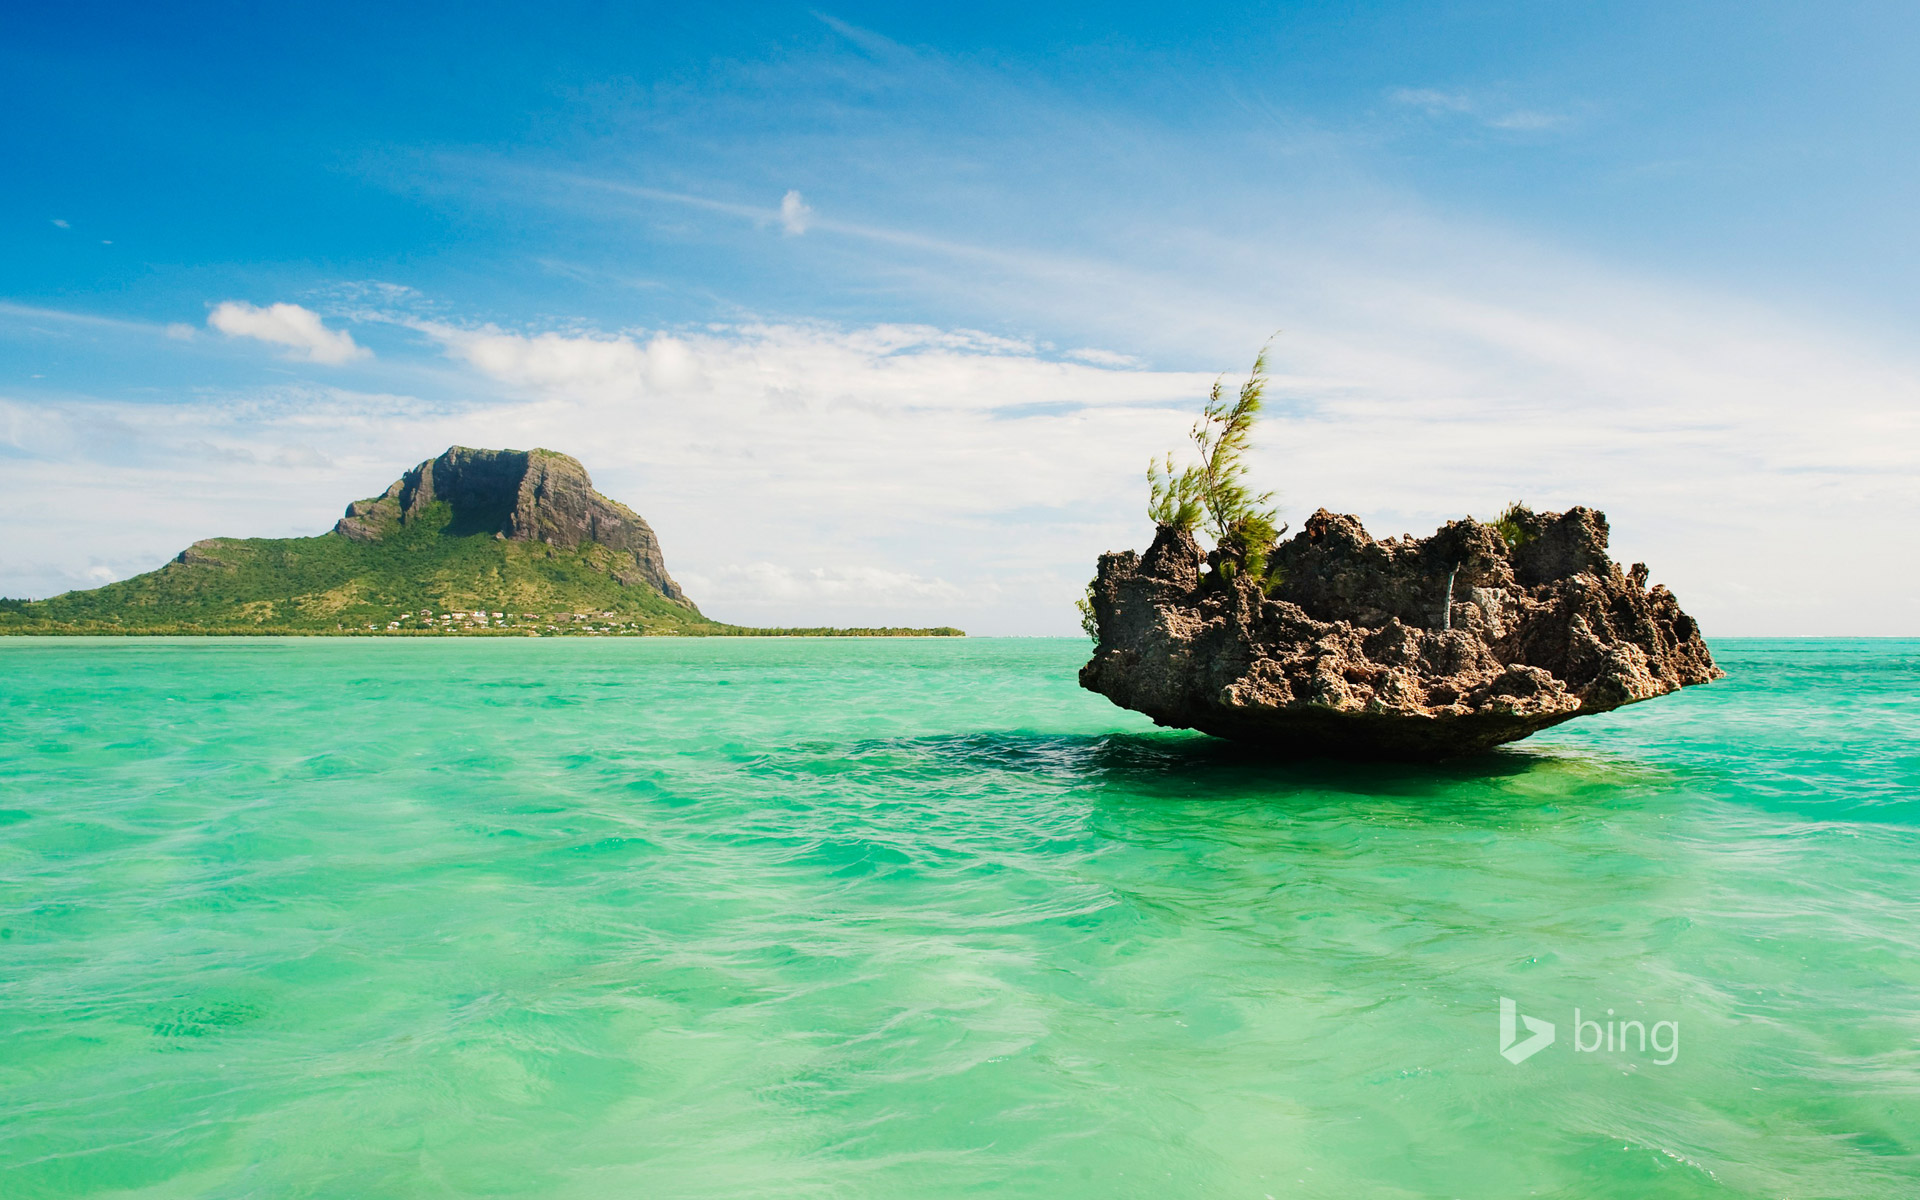 Le Morne Brabant mountain and islet, Mauritius